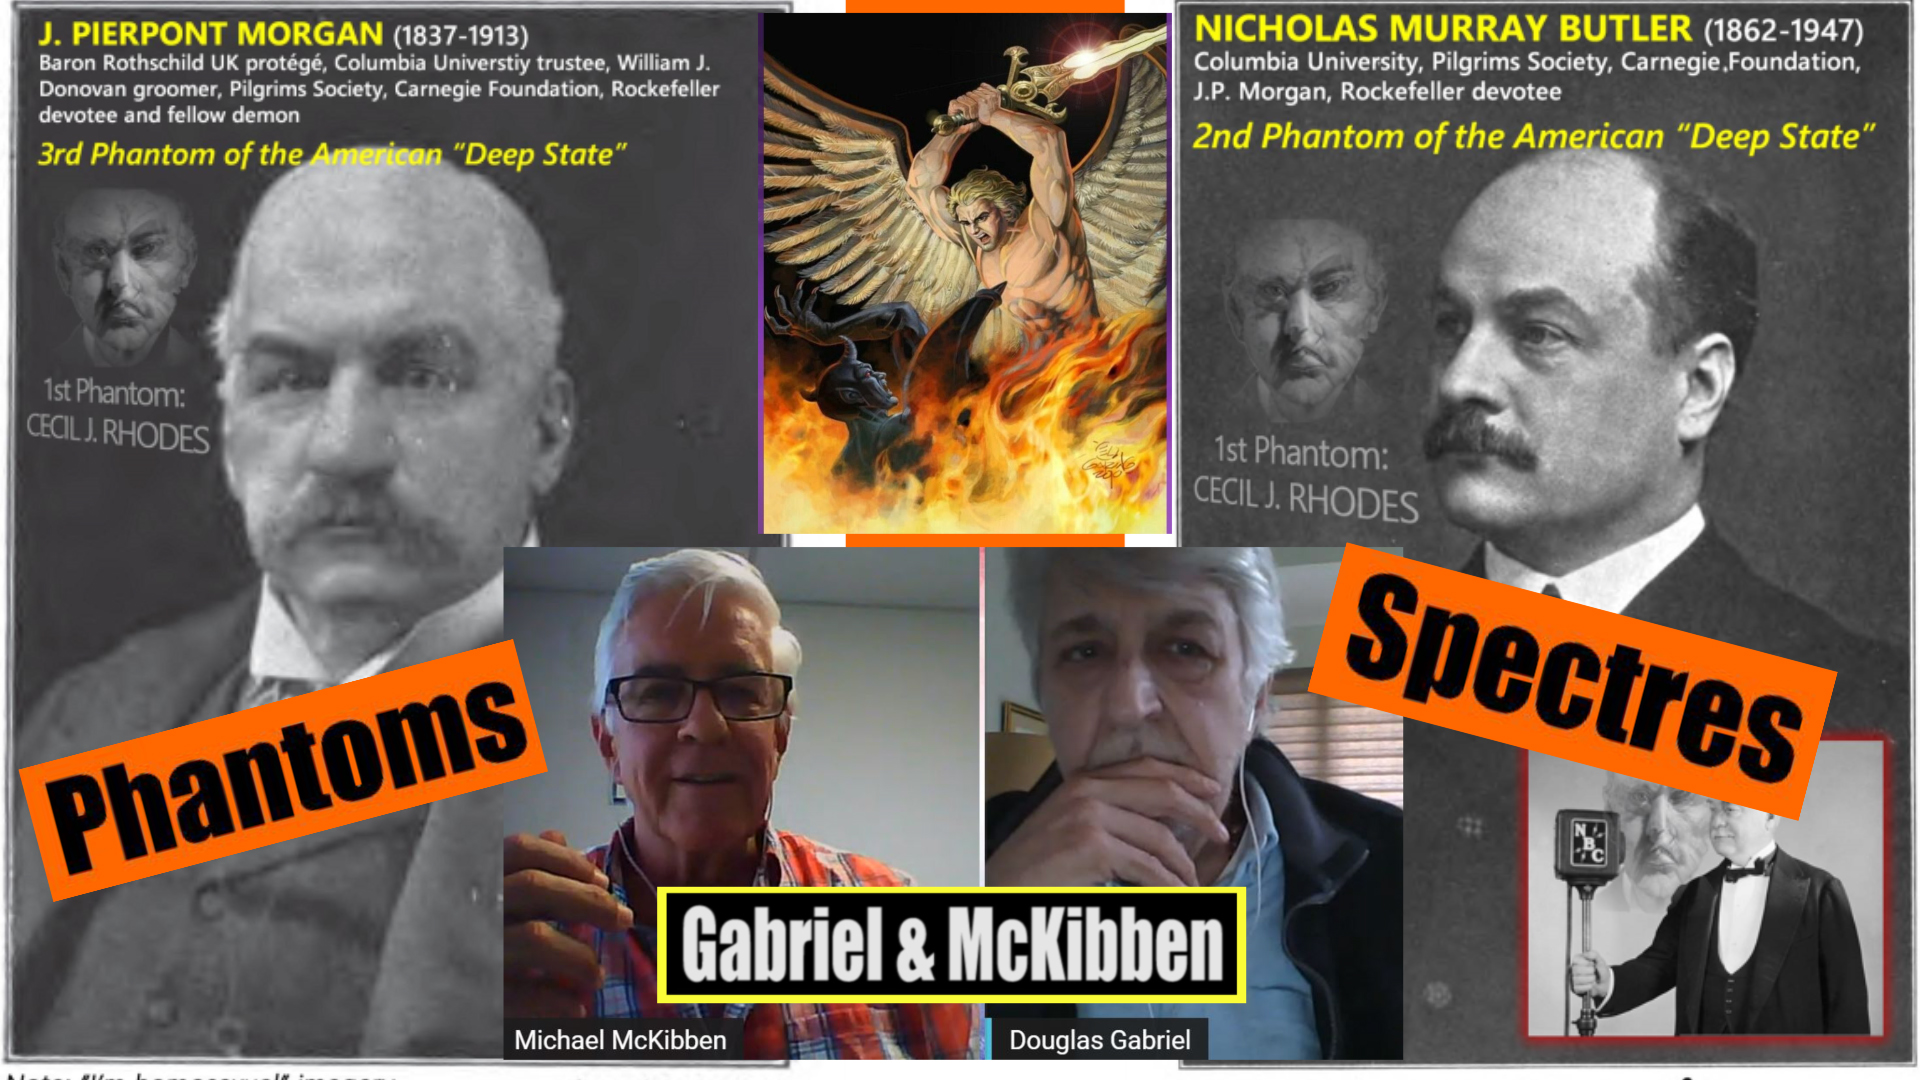 Gabriel, McKibben. (Jun. 11, 2021). Phantoms and Specters of the British Monarchy. American Intelligence Media, Americans for Innovation.